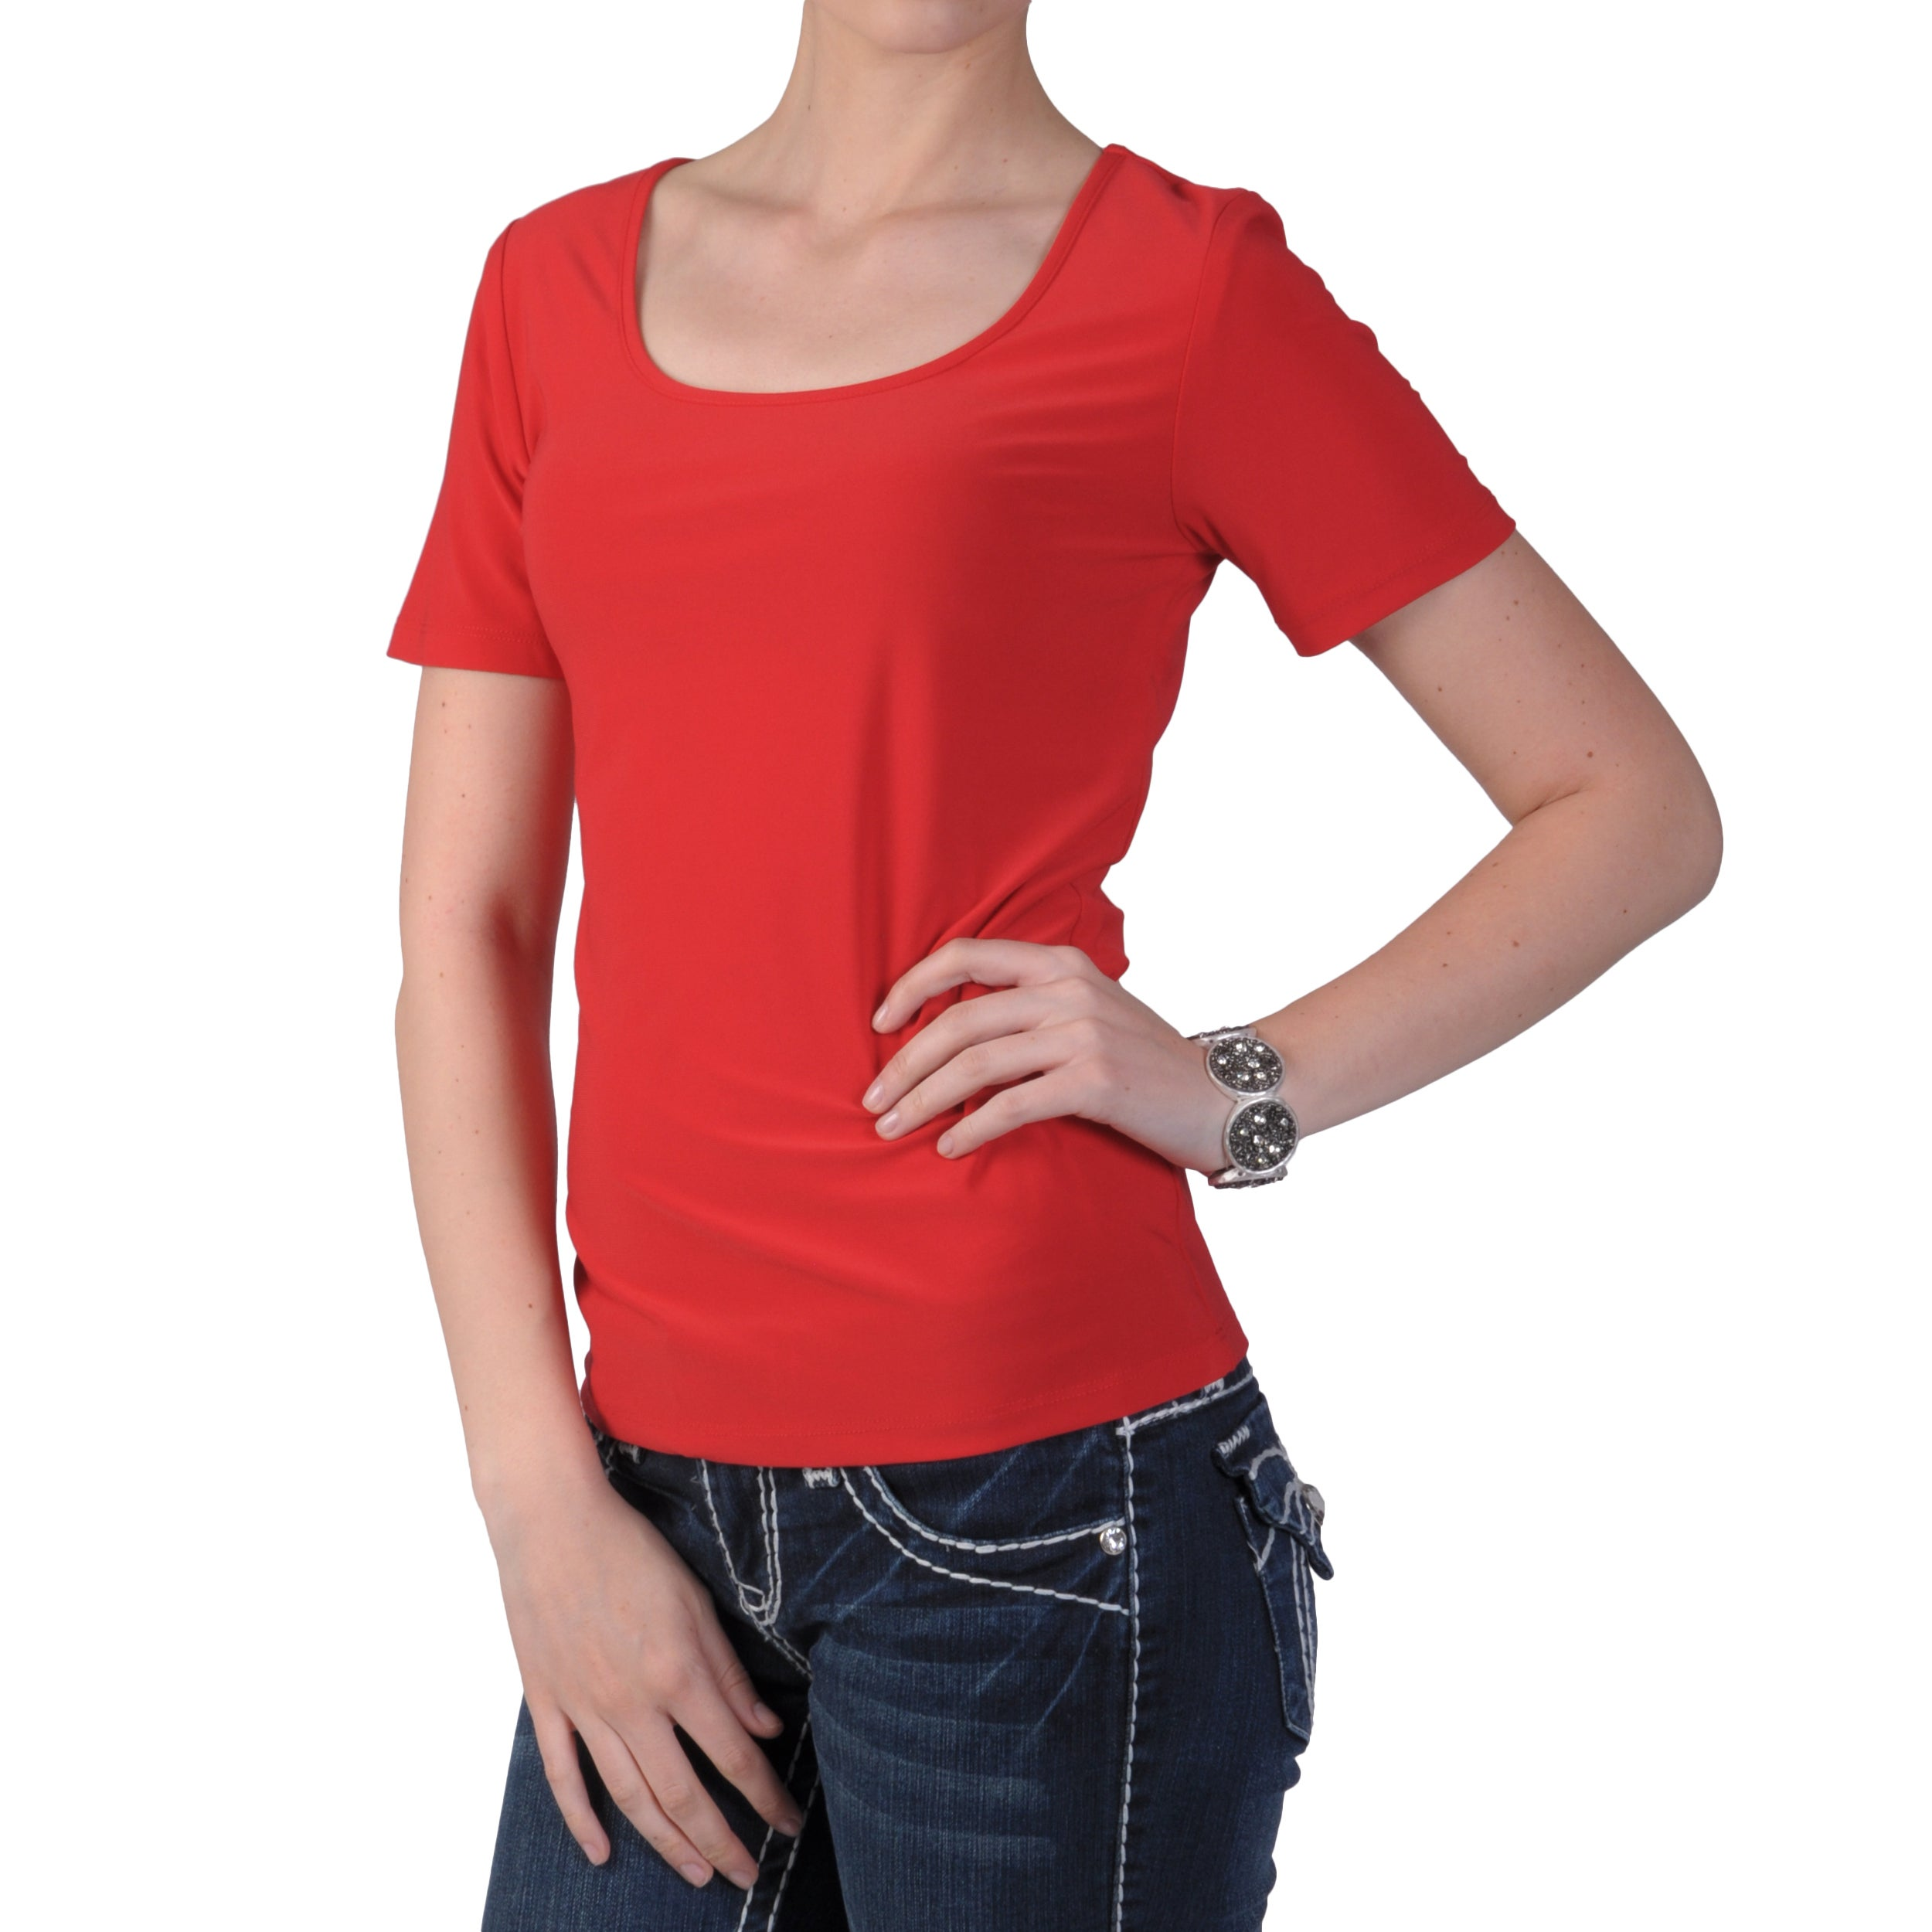 Tressa Designs Women's Stretchy Short-sleeve Scoop Neck Top